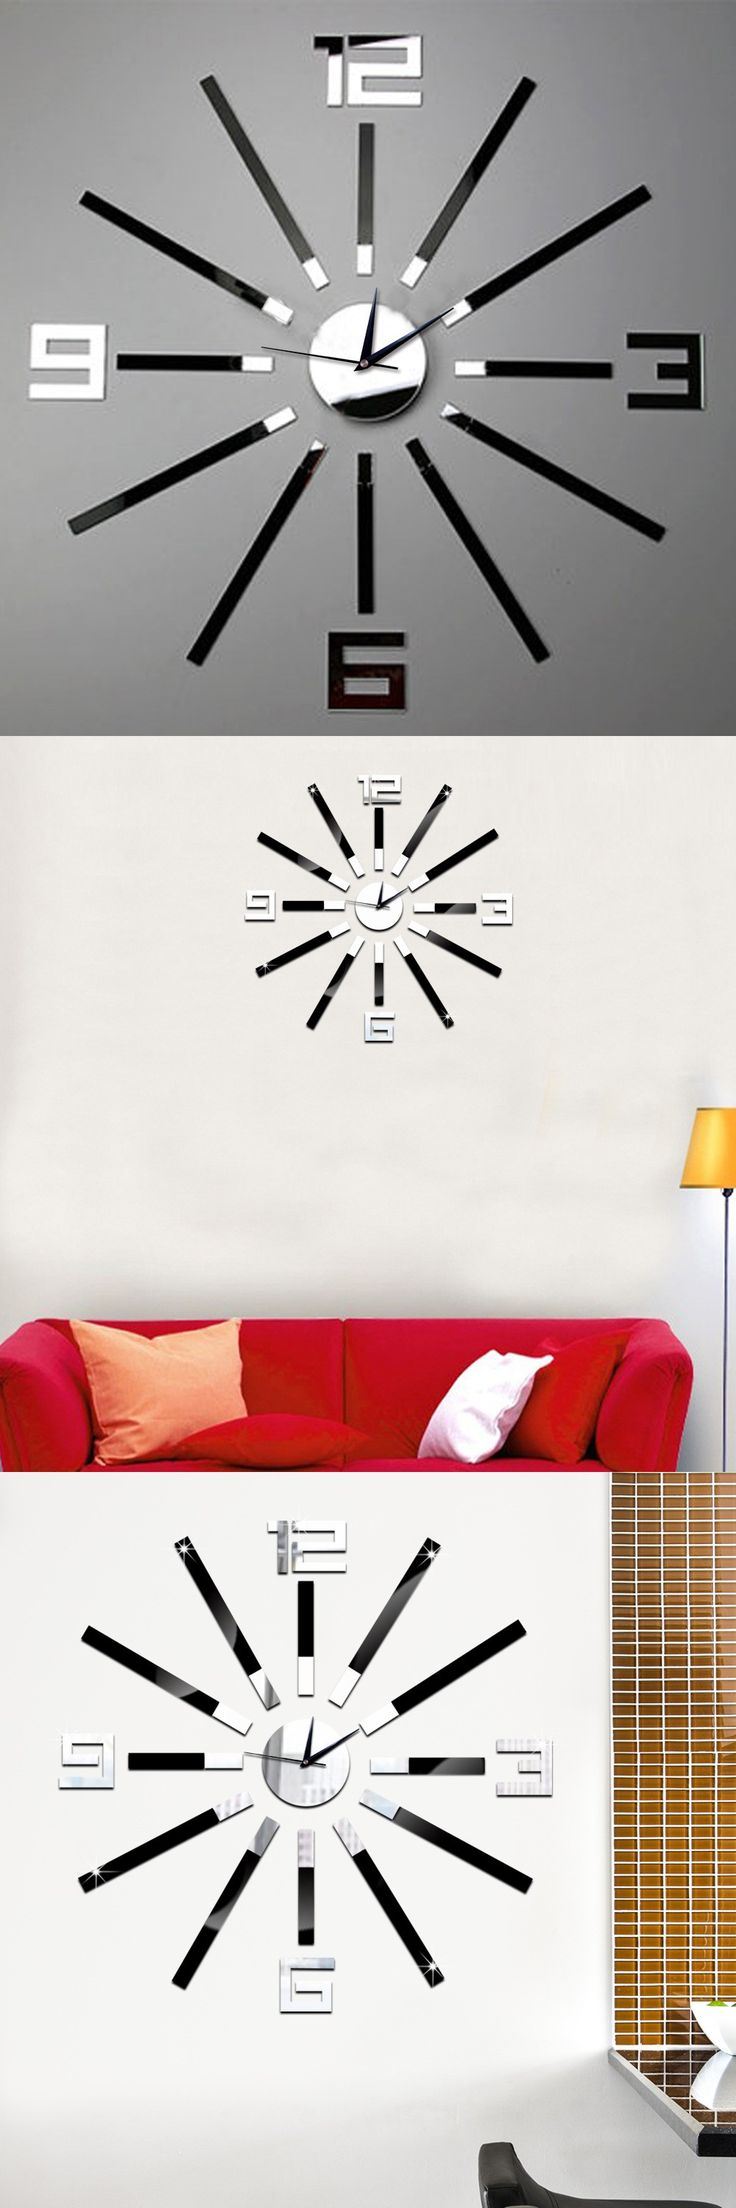 Best 25 mirror wall clock ideas on pinterest unique wall clocks new creative home wall clock in europe and the contracted fashion mute diy mirror wall clock room home decor amipublicfo Choice Image